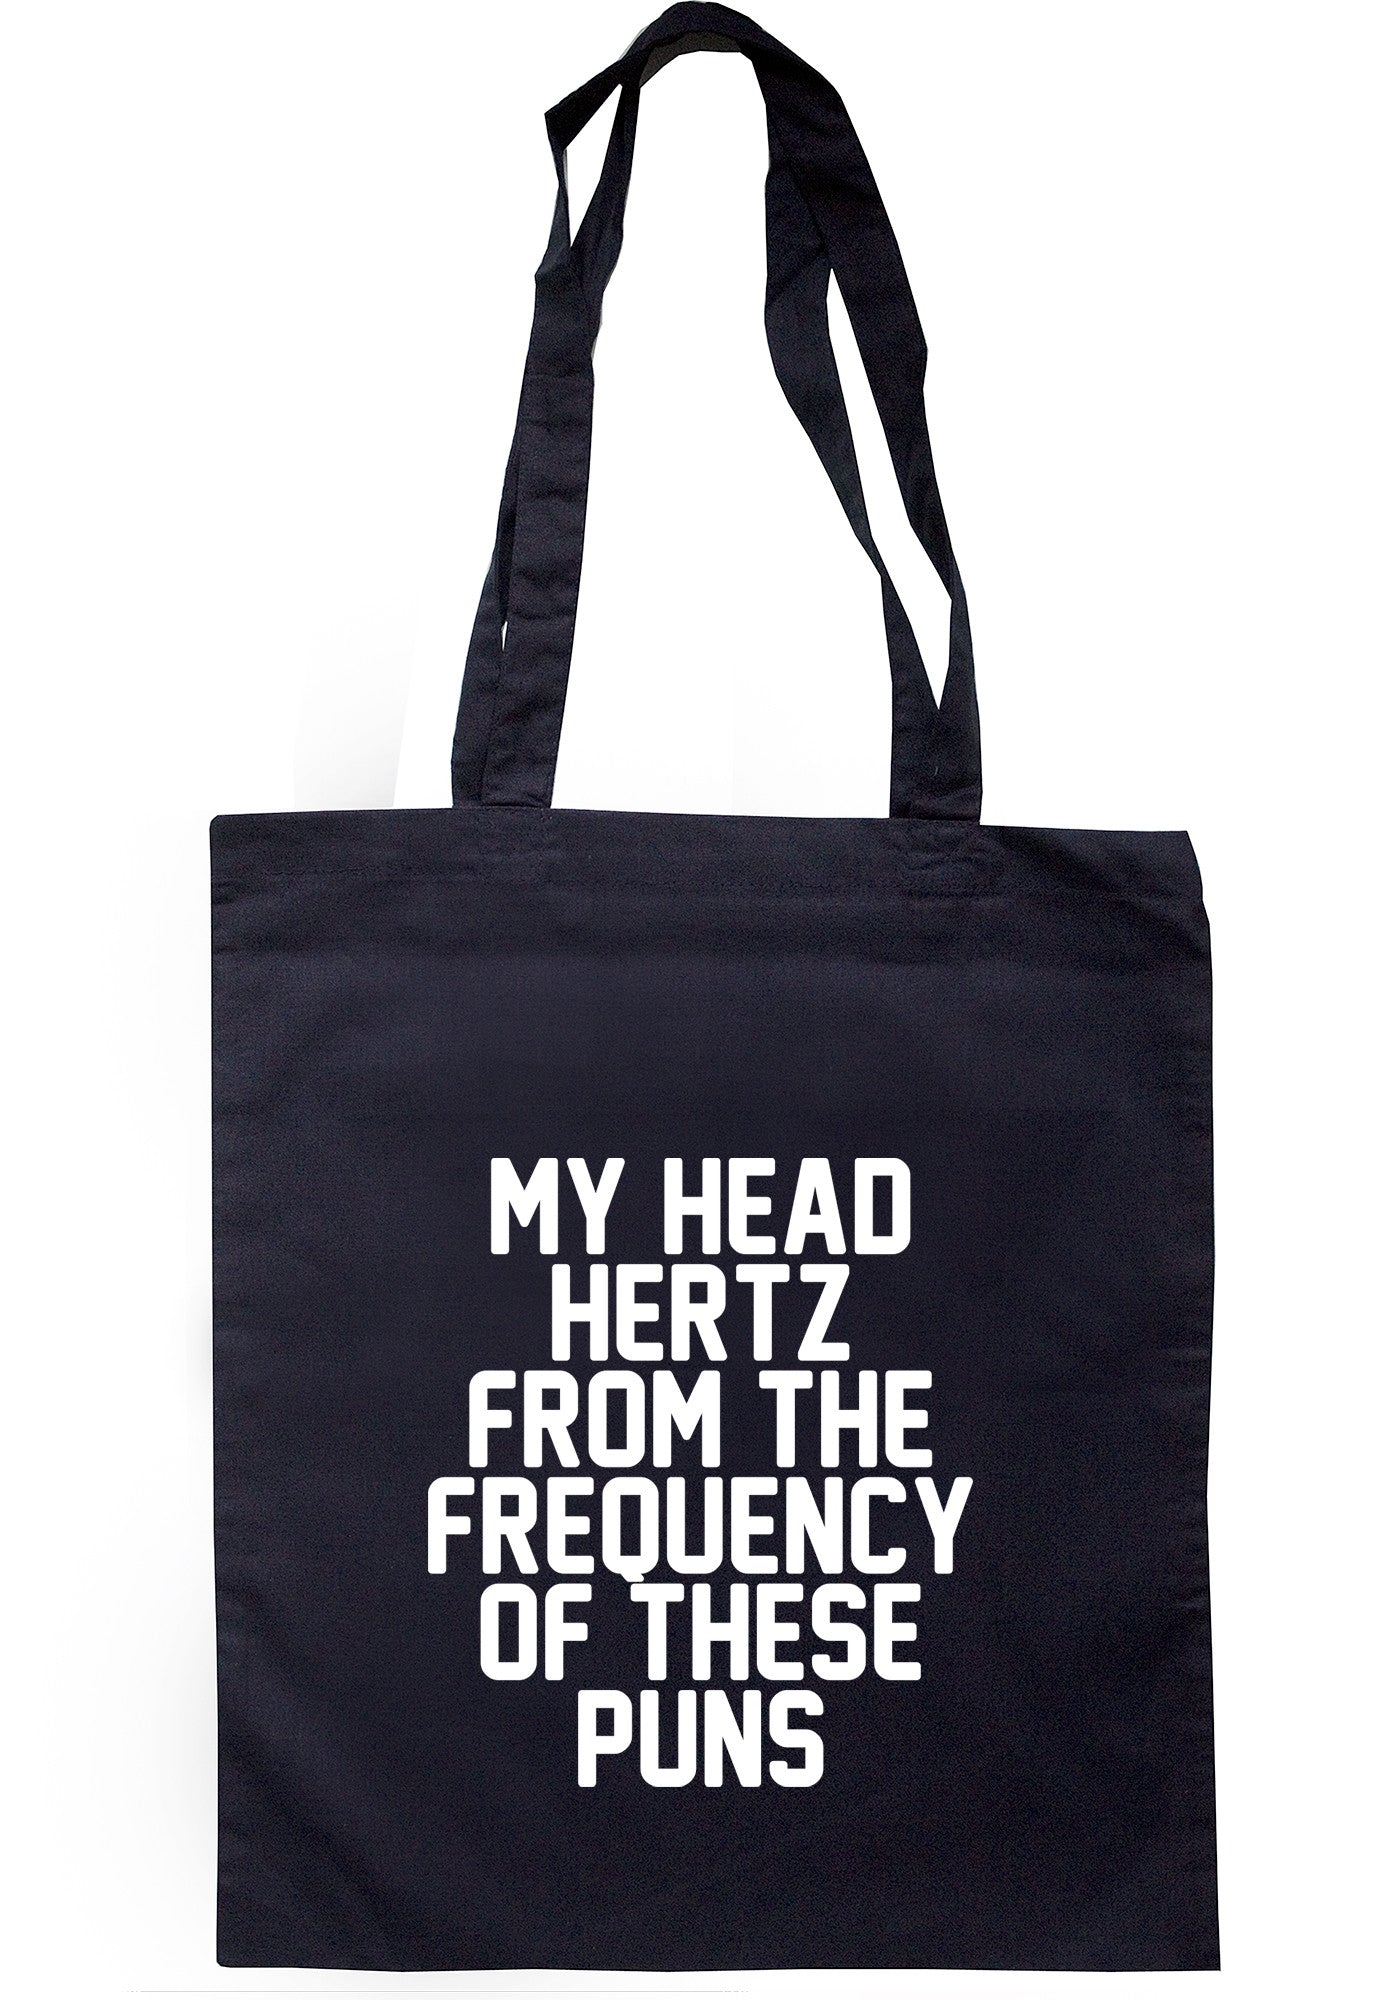 My Head Hertz From The Frequency Of These Puns Tote Bag TB0368 - Illustrated Identity Ltd.